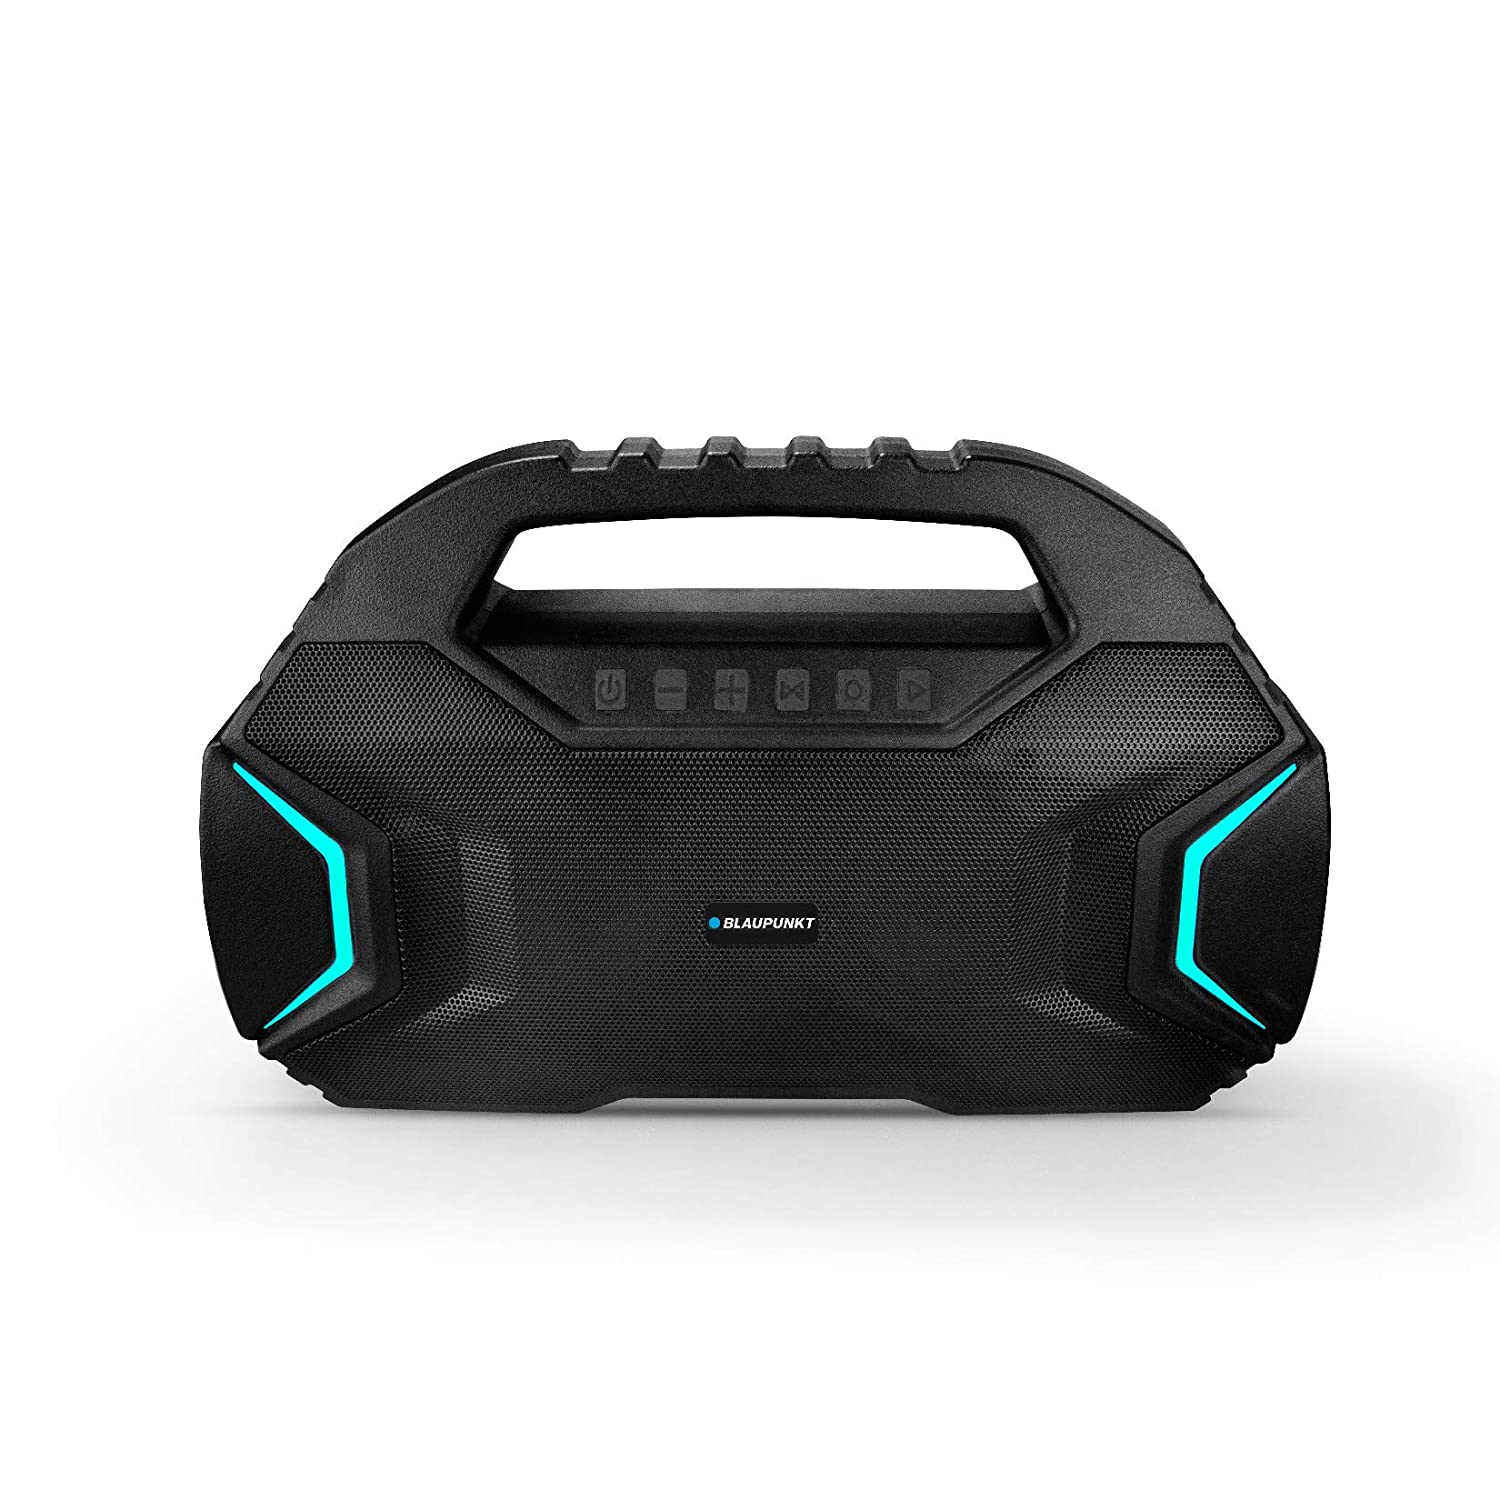 Blaupunkt Bt400 Volcano 40 Portable Party Speaker